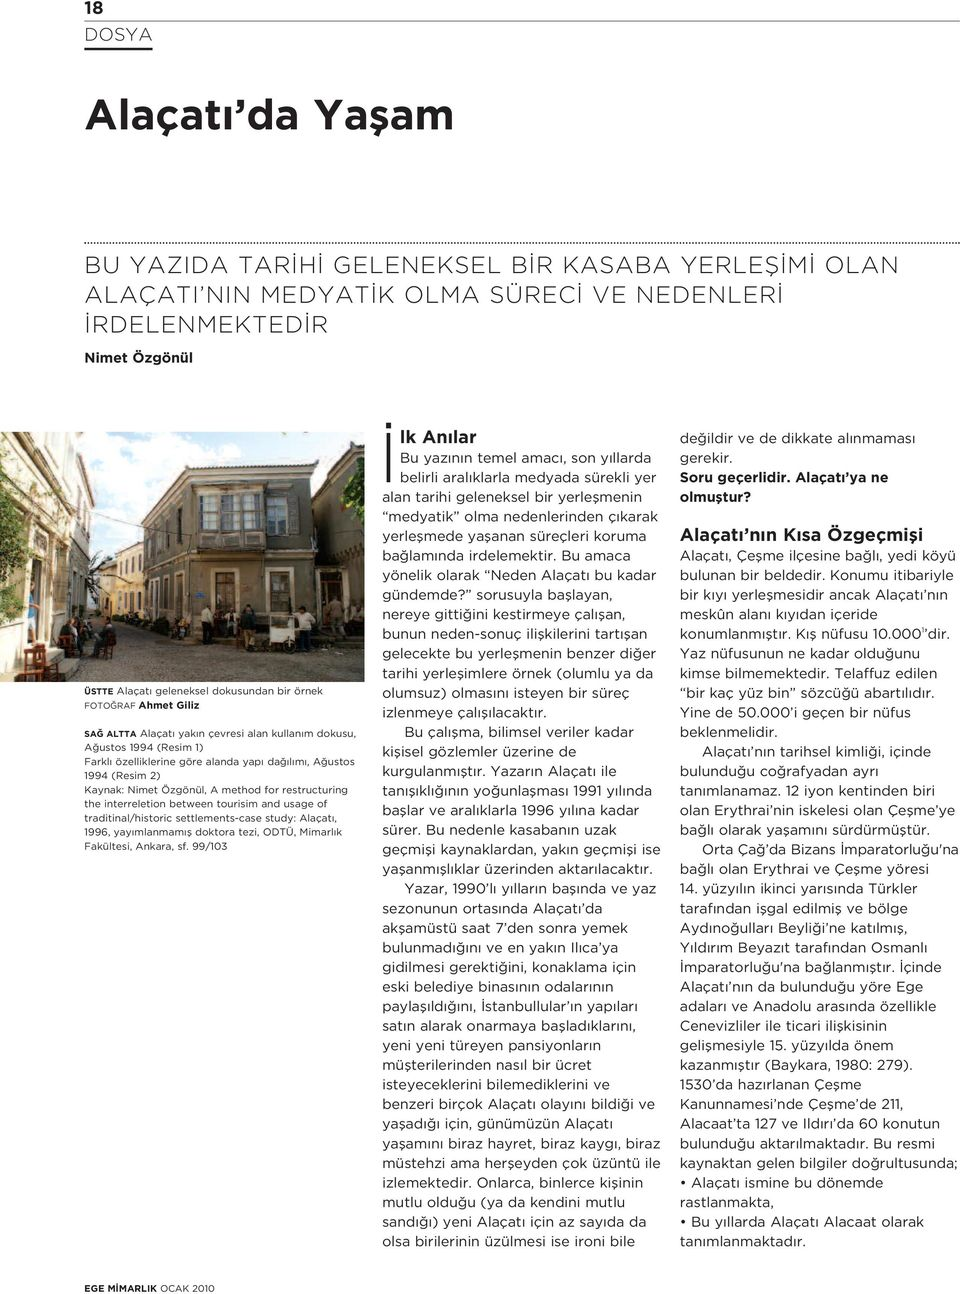 restructuring the interreletion between tourisim and usage of traditinal/historic settlements-case study: Alaçat, 1996, yay mlanmam fl doktora tezi, ODTÜ, Mimarl k Fakültesi, Ankara, sf.